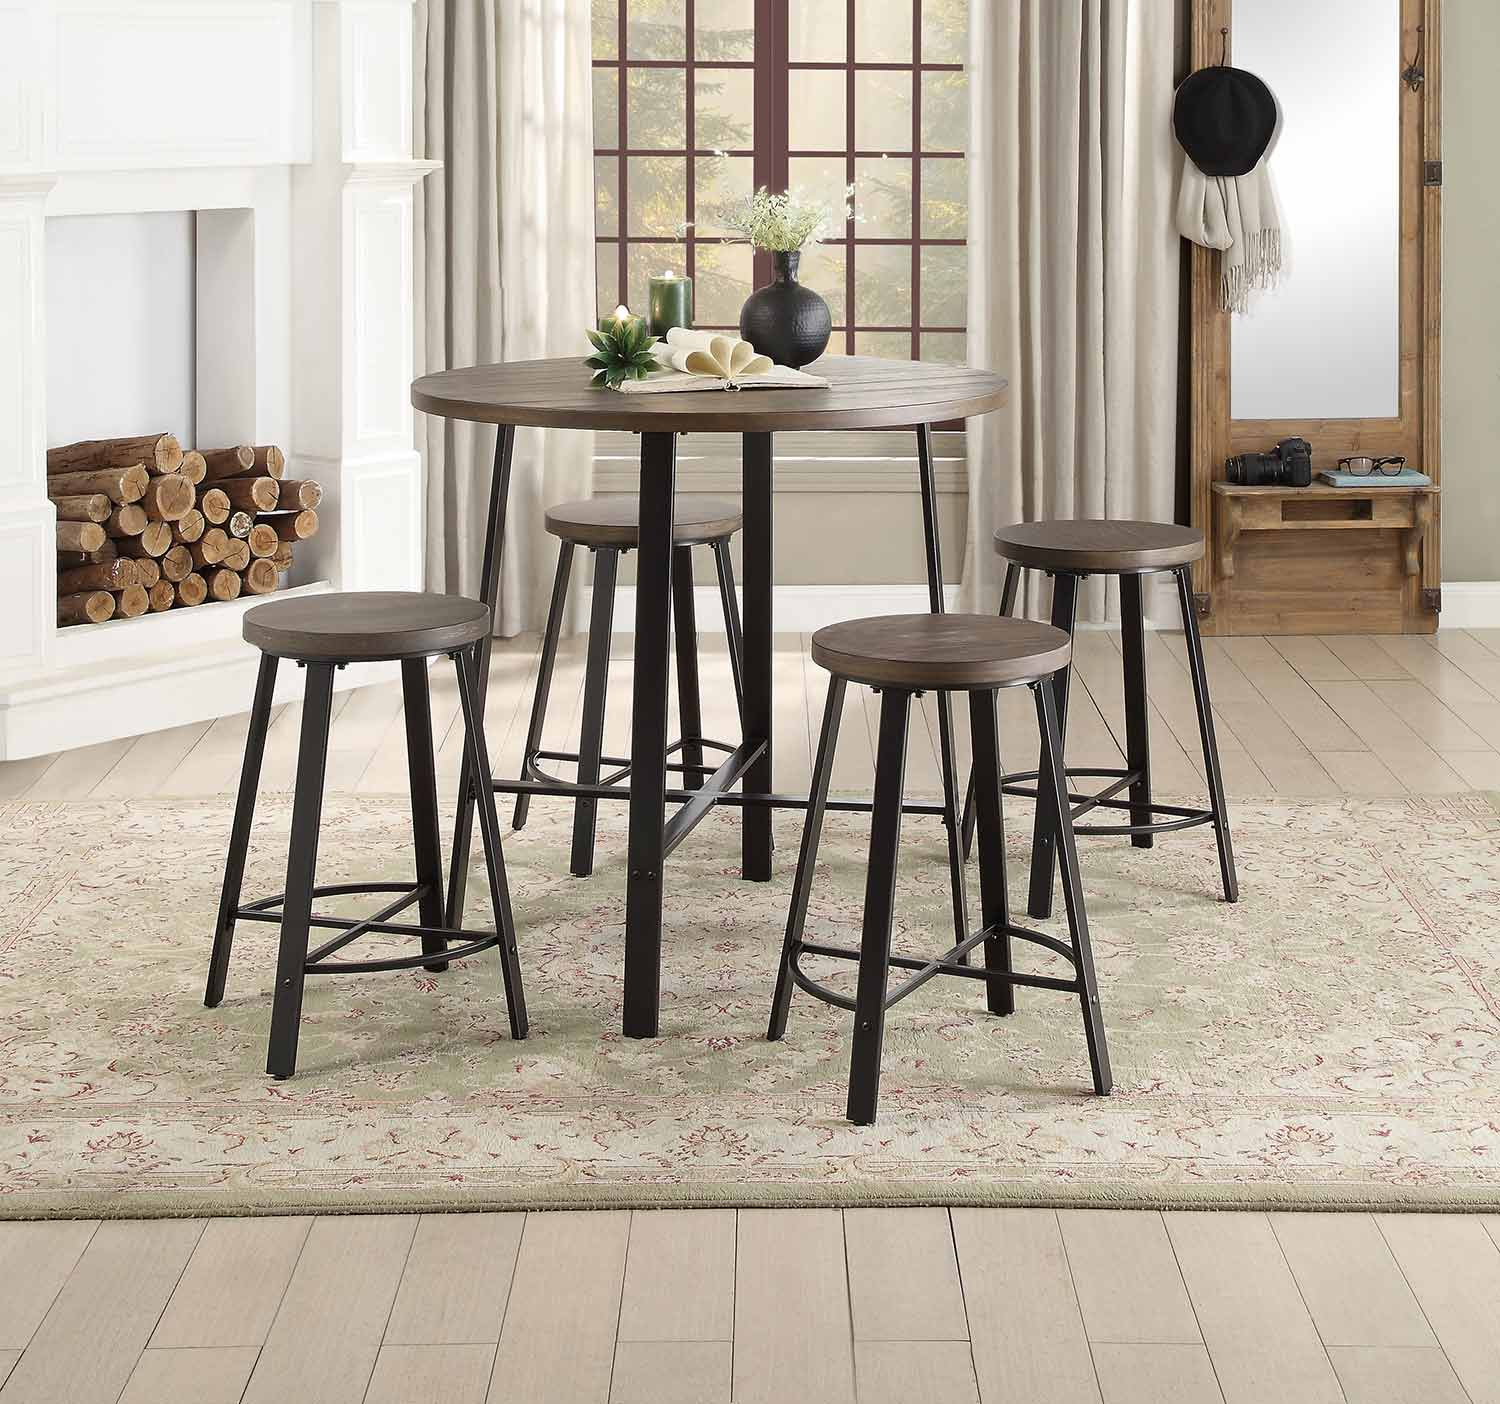 Homelegance Chevre Round Counter Height Dining Set - Rustic - Gray Metal